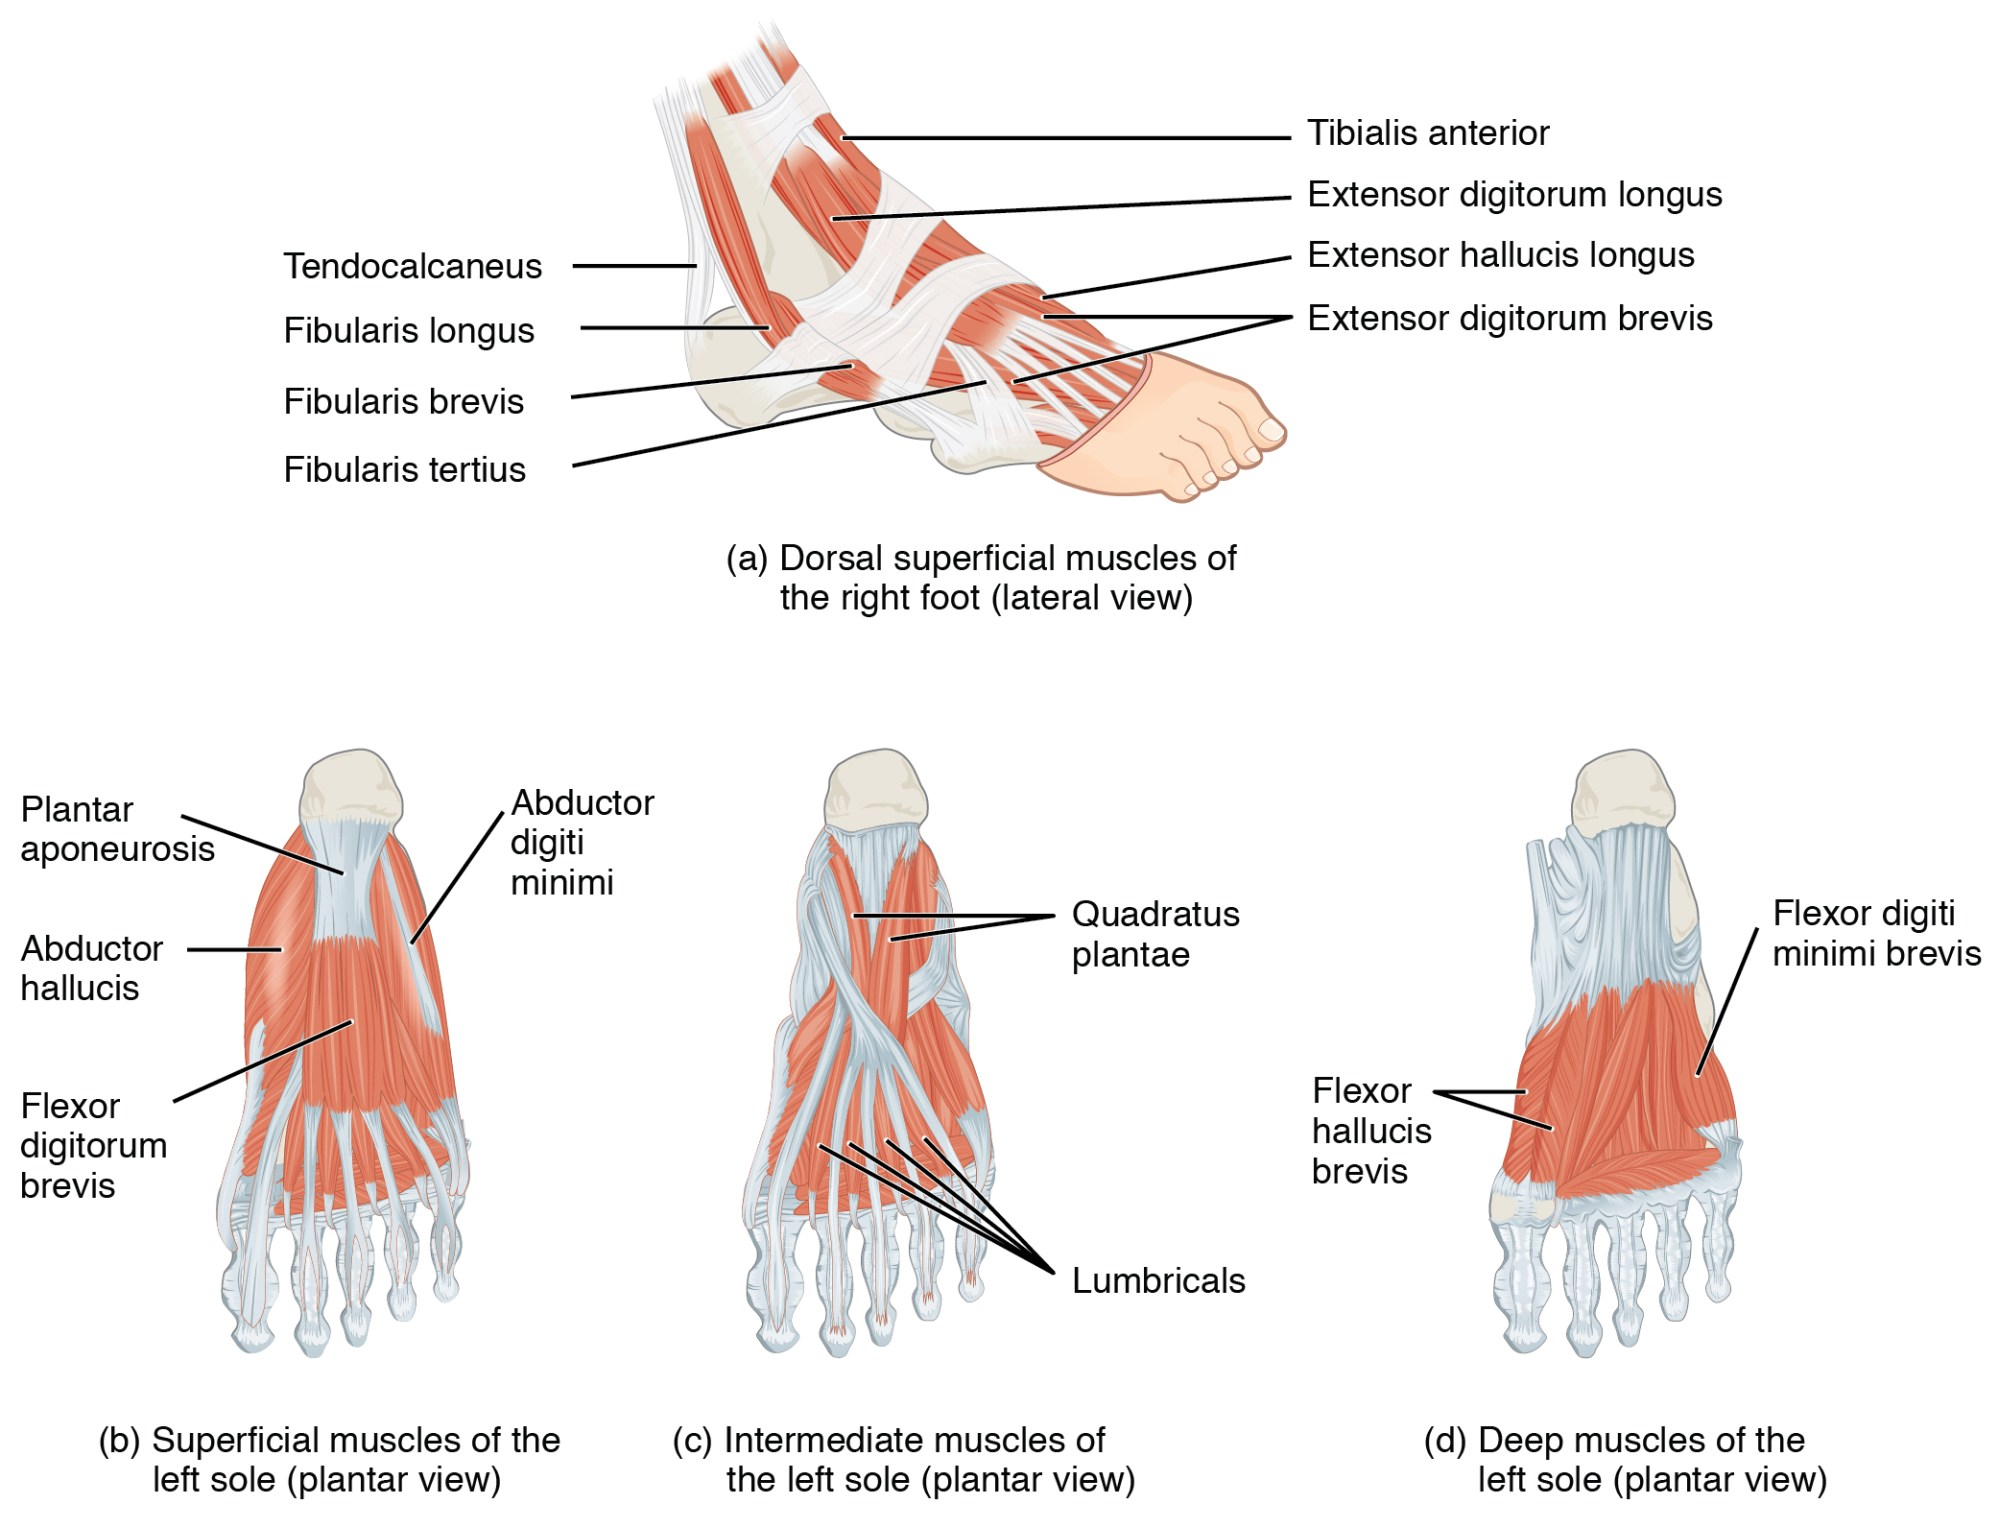 hight resolution of located at https cnx org resources 747c45c7283beabbdf2f8e385a60cbb7e3a49ac5 1124 intrinsic muscles of the foot jpg